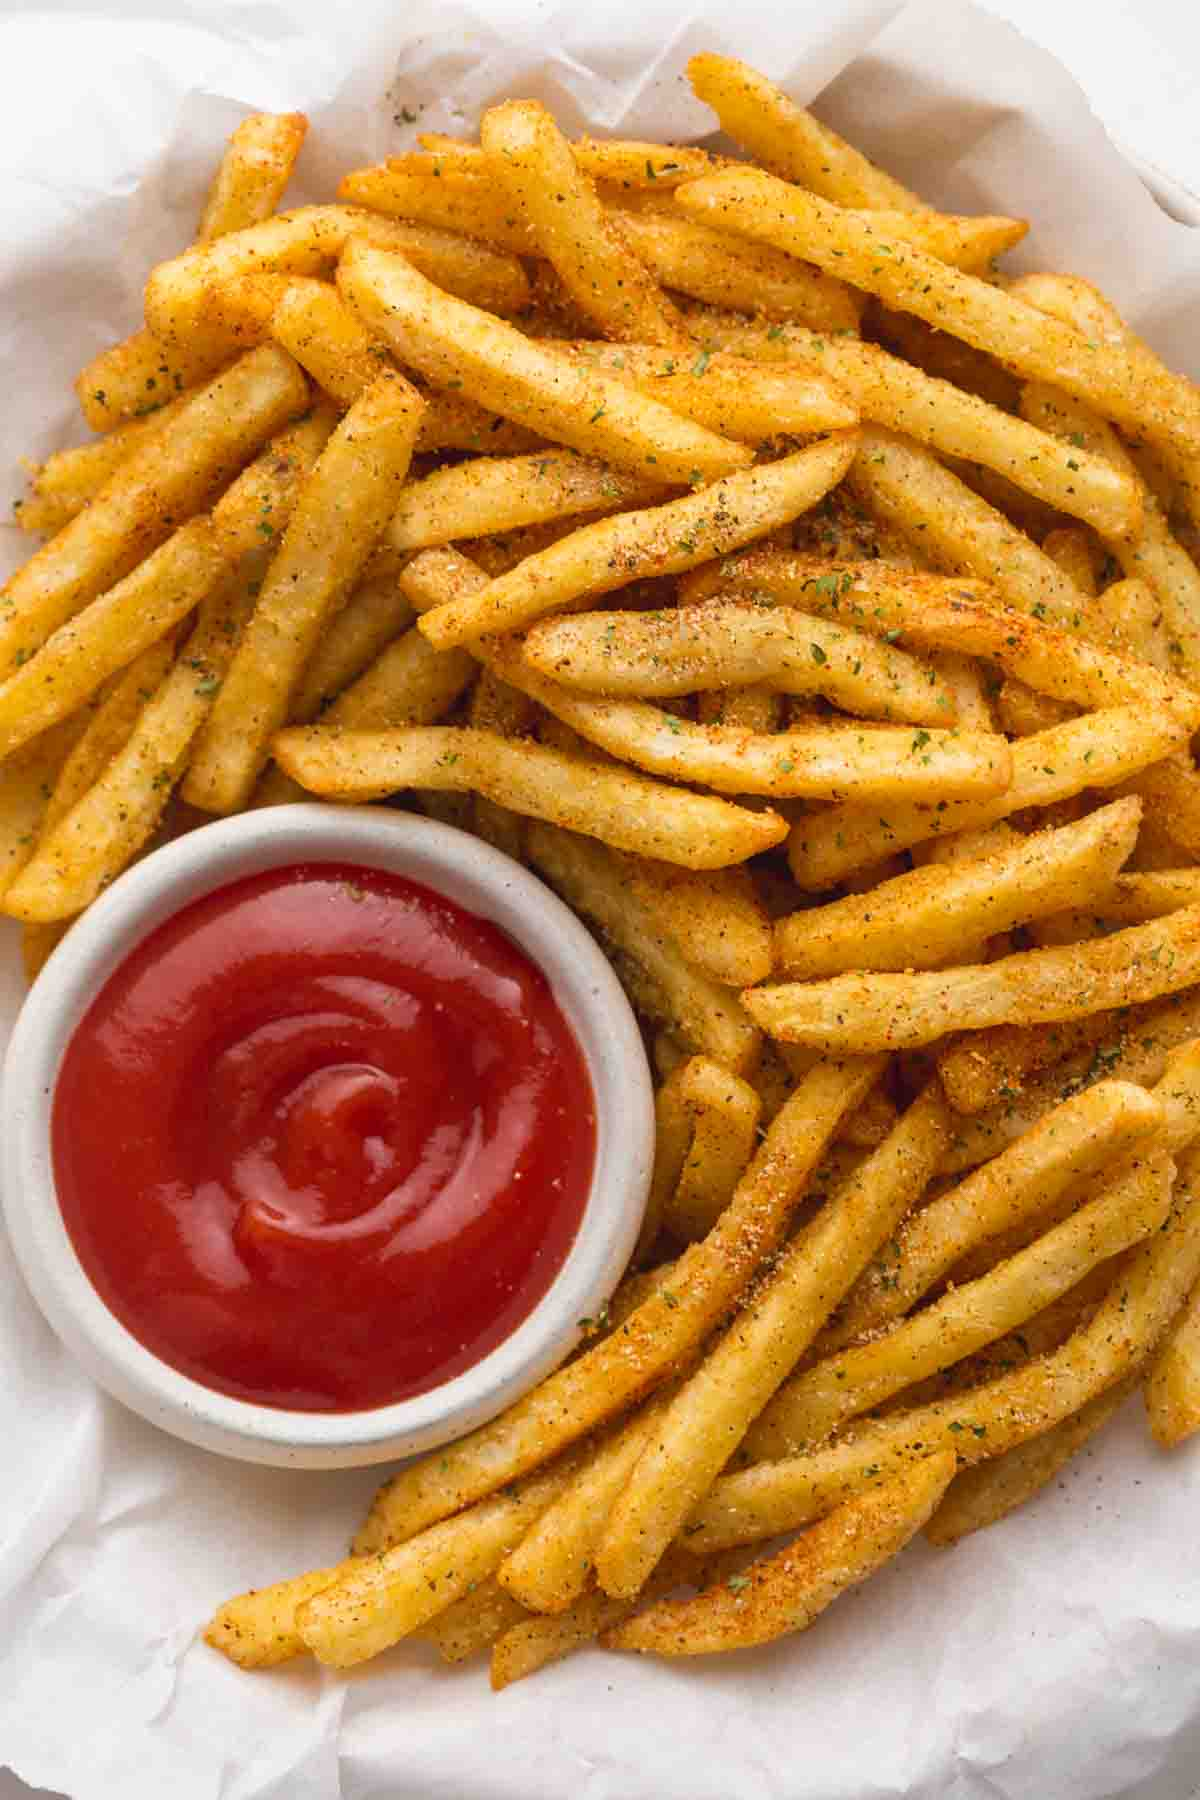 Close up of golden french fries with French Fry Seasoning and ketchup